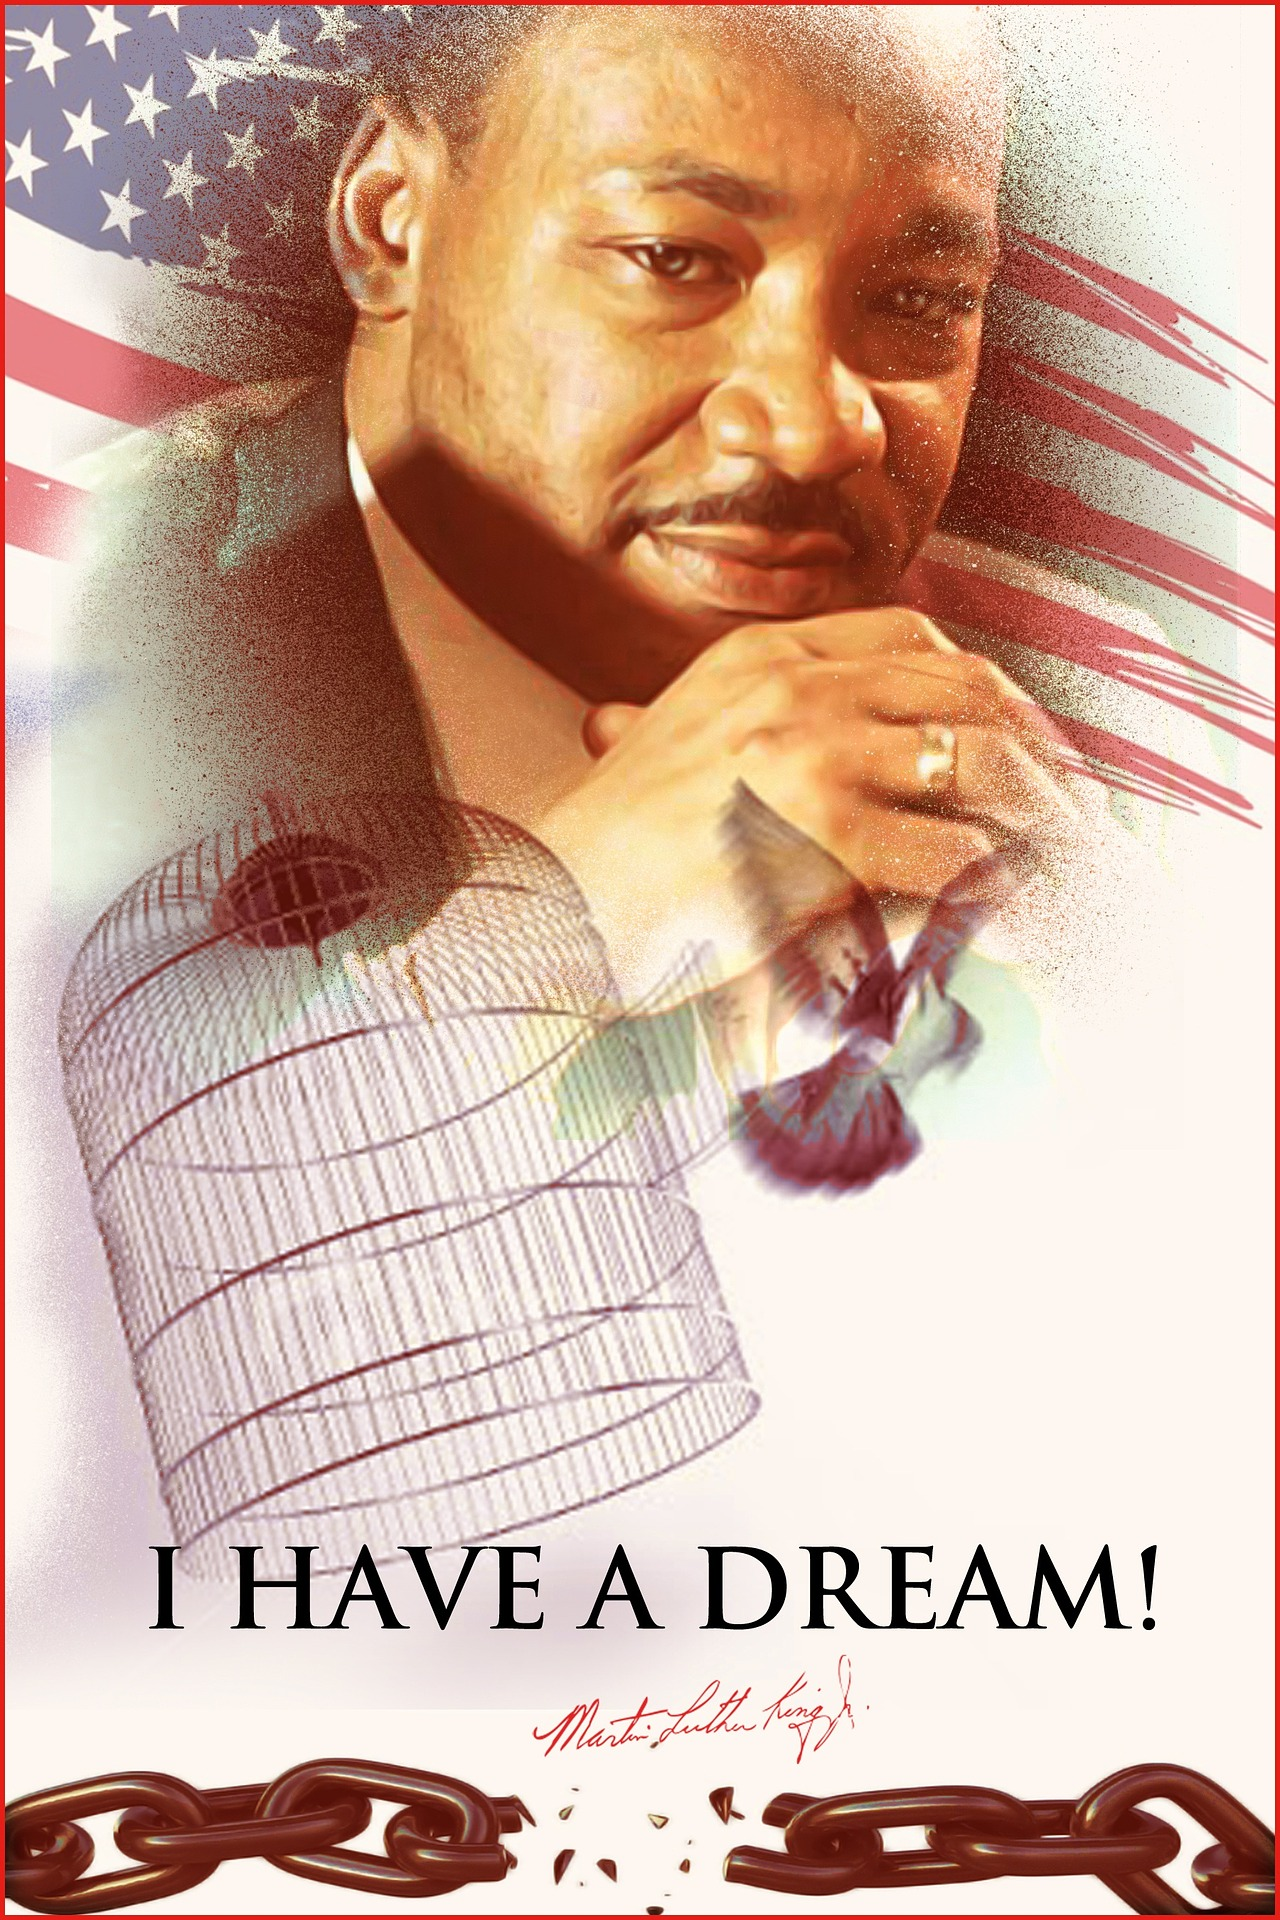 Martin Luther King Jr dream was born